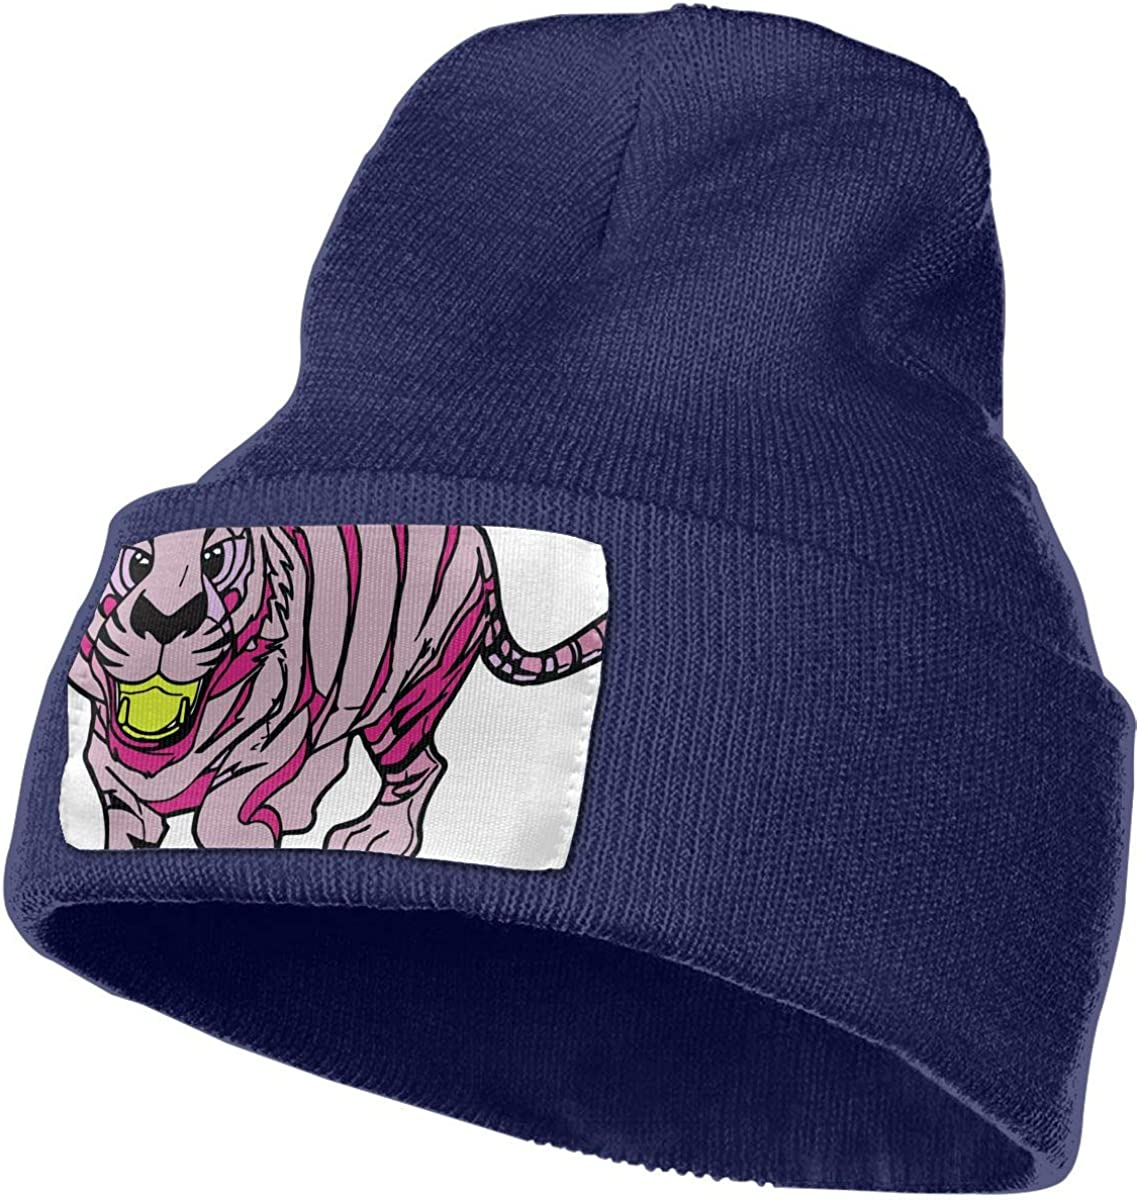 is It A Cat Or A Tiger Unisex Fashion Knitted Hat Luxury Hip-Hop Cap